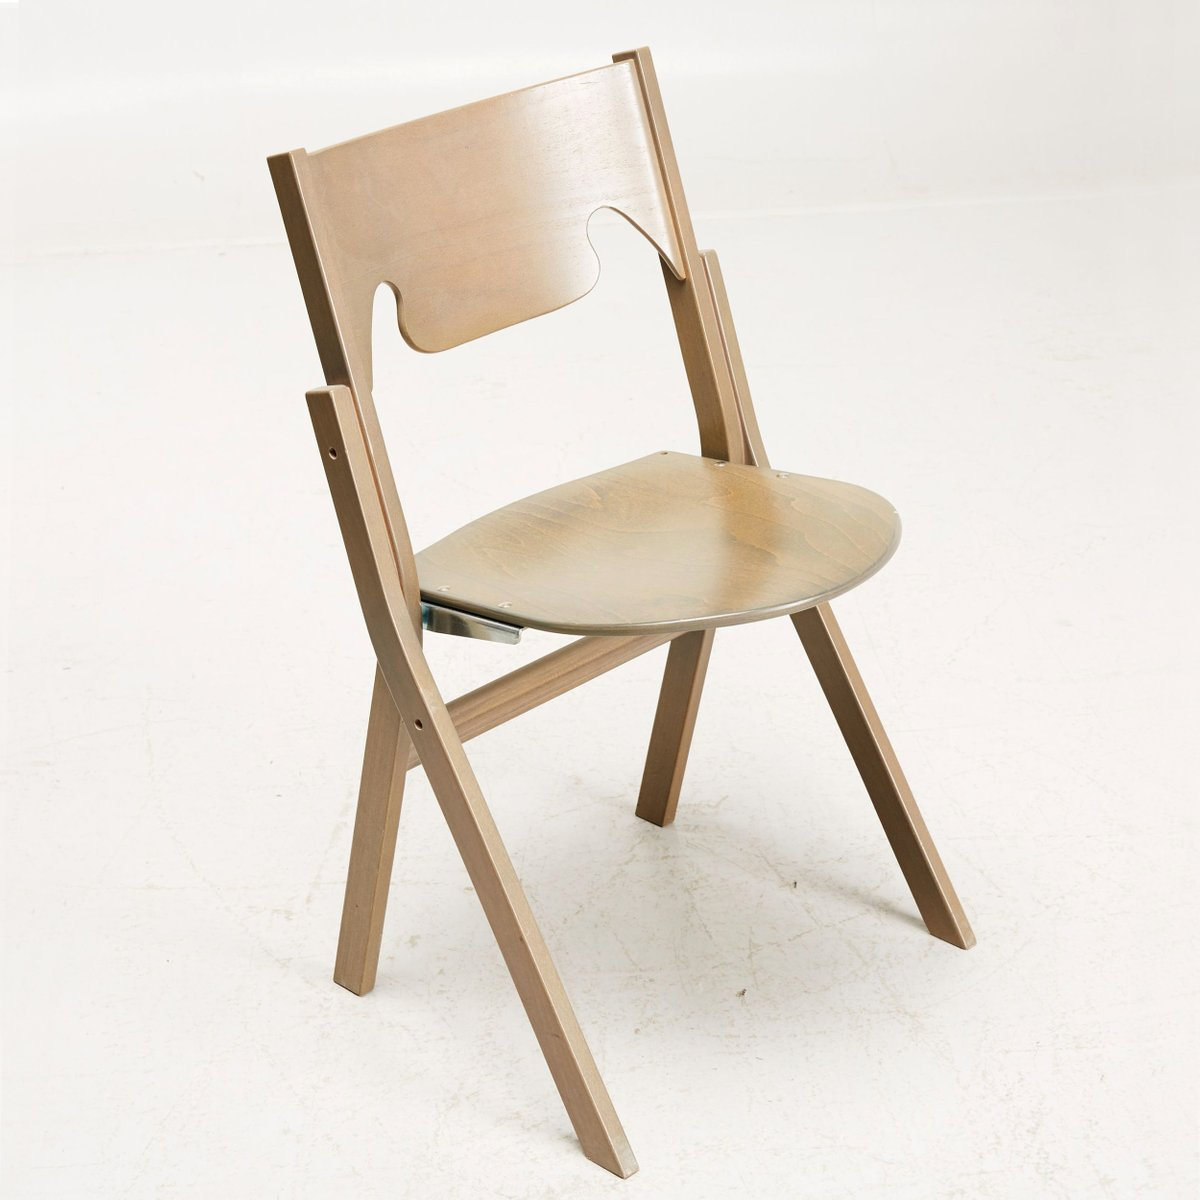 Scandinavian Modern Folding Chairs by Ake Axelsson Set of 24 for sale at Pamono